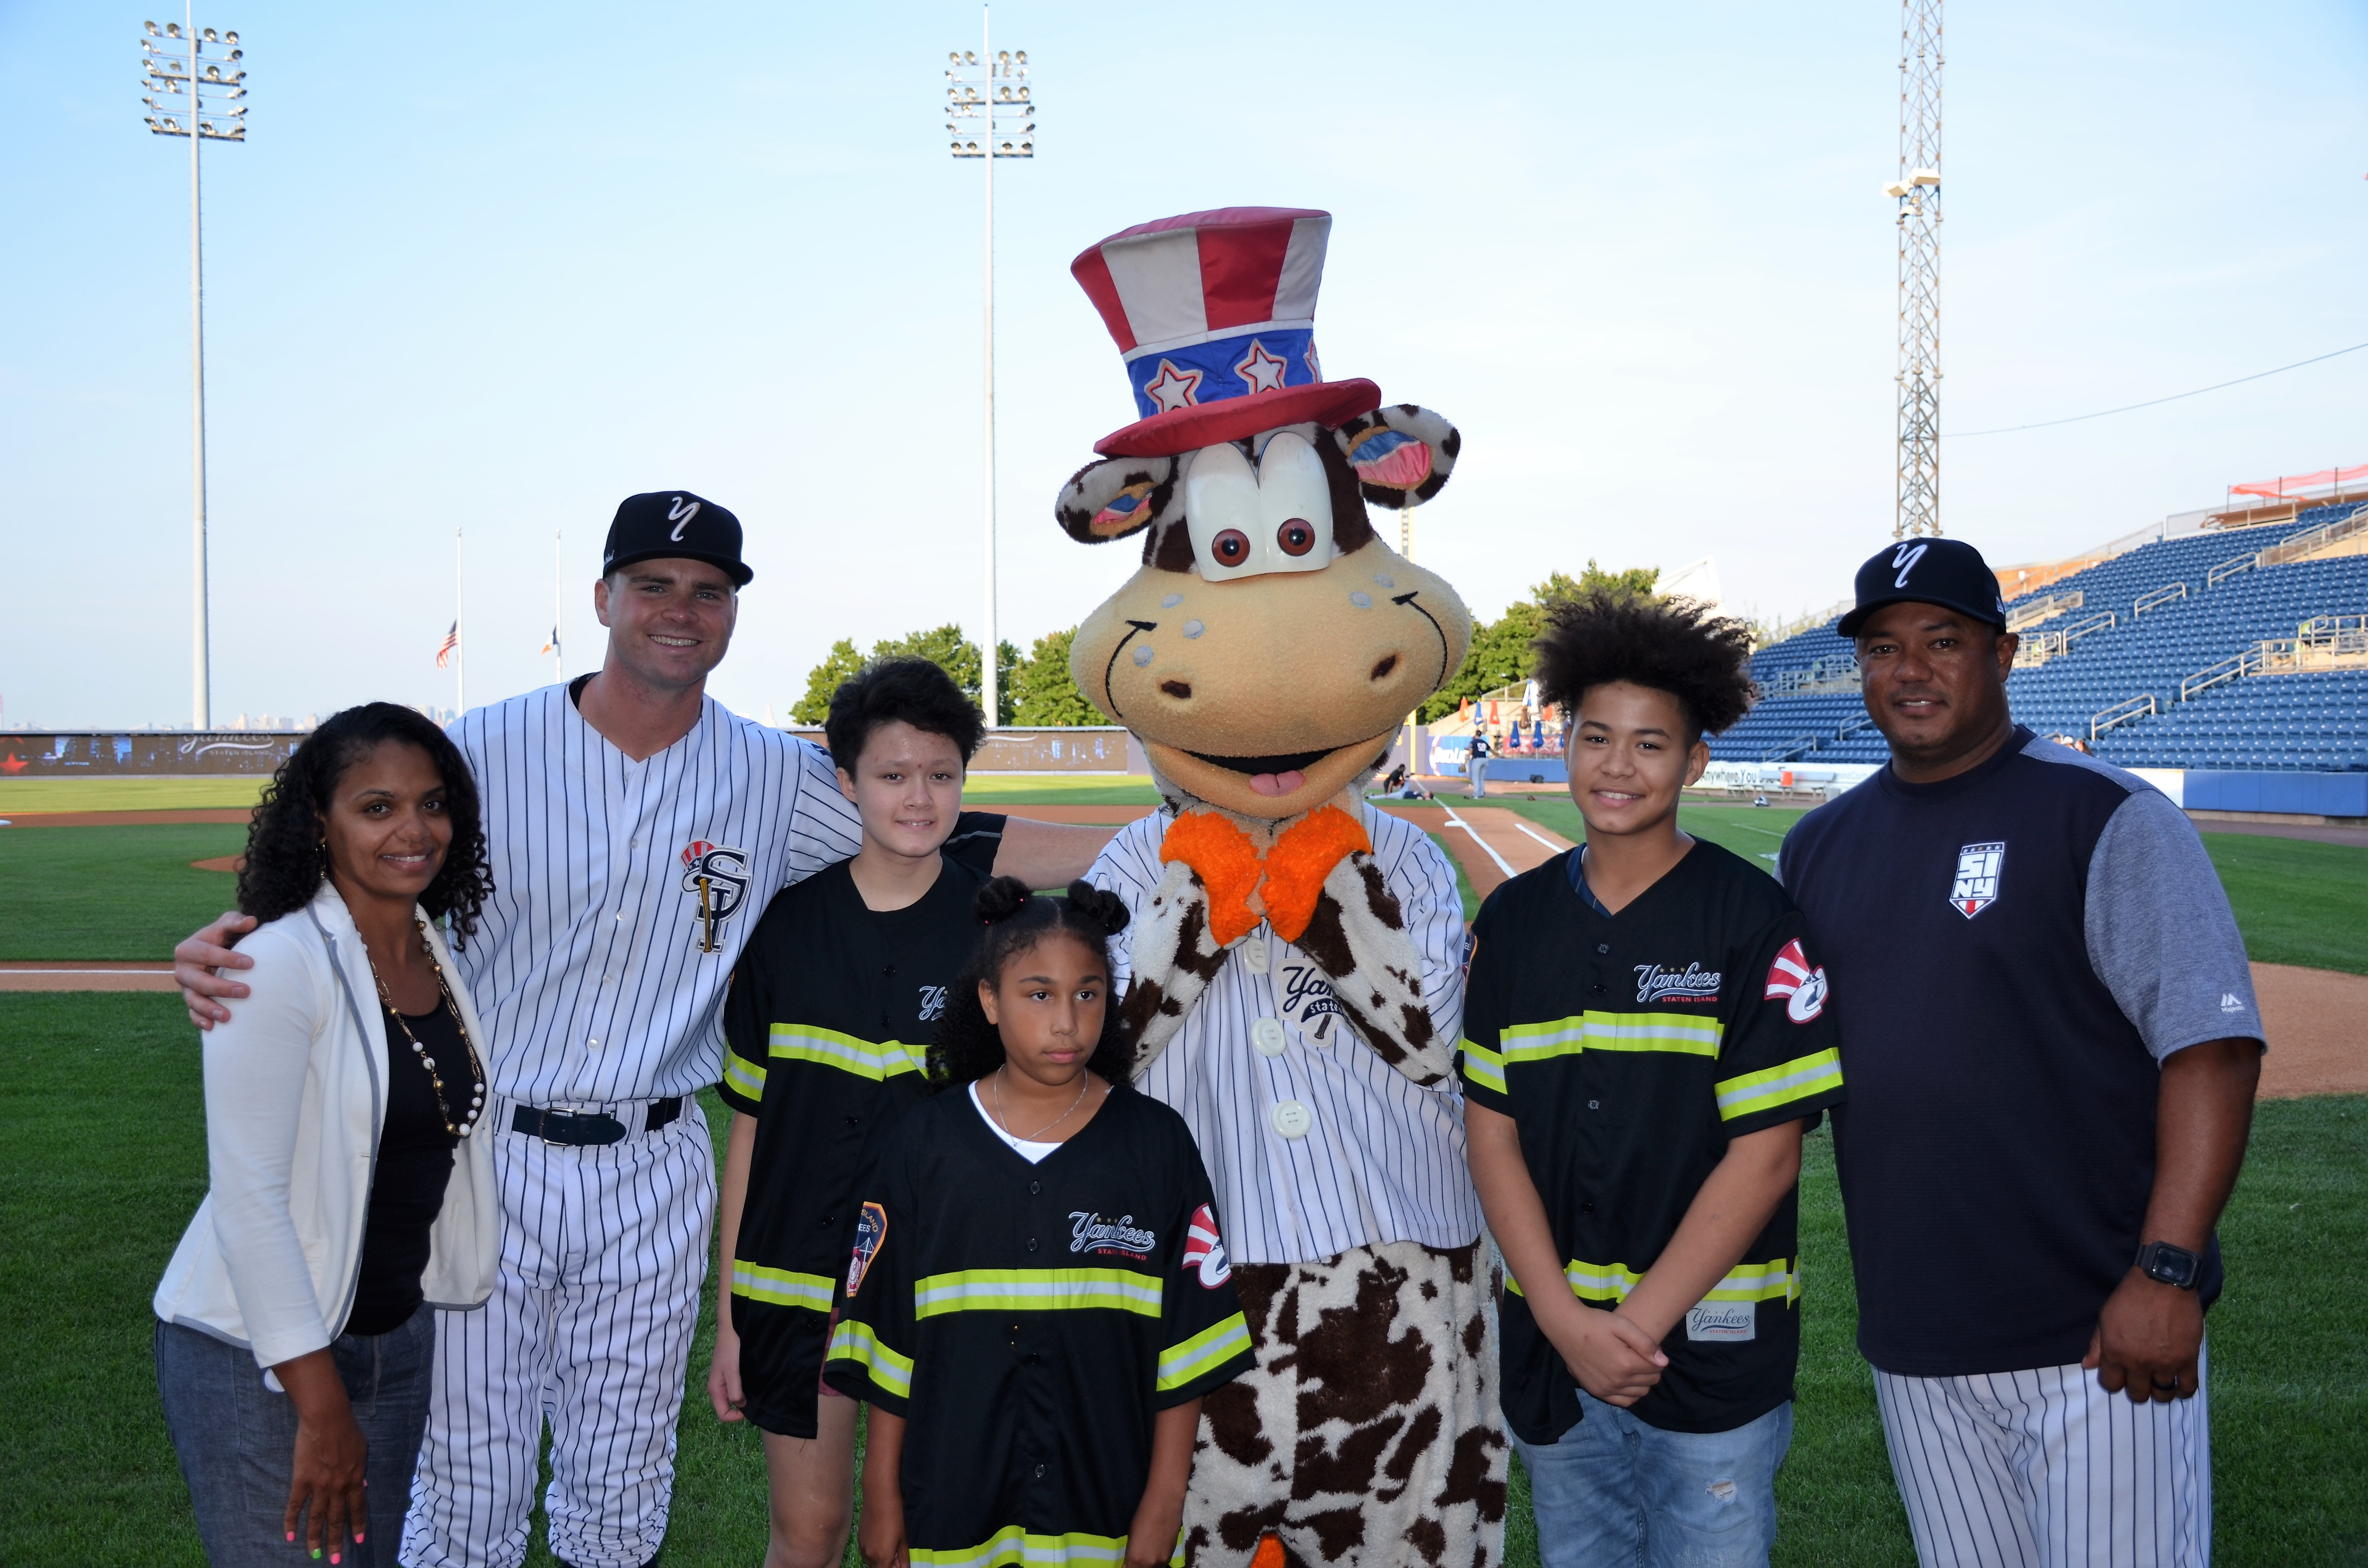 2017 Staten Island Yankees/Con Edison Kids recognized for their contributions to the community.